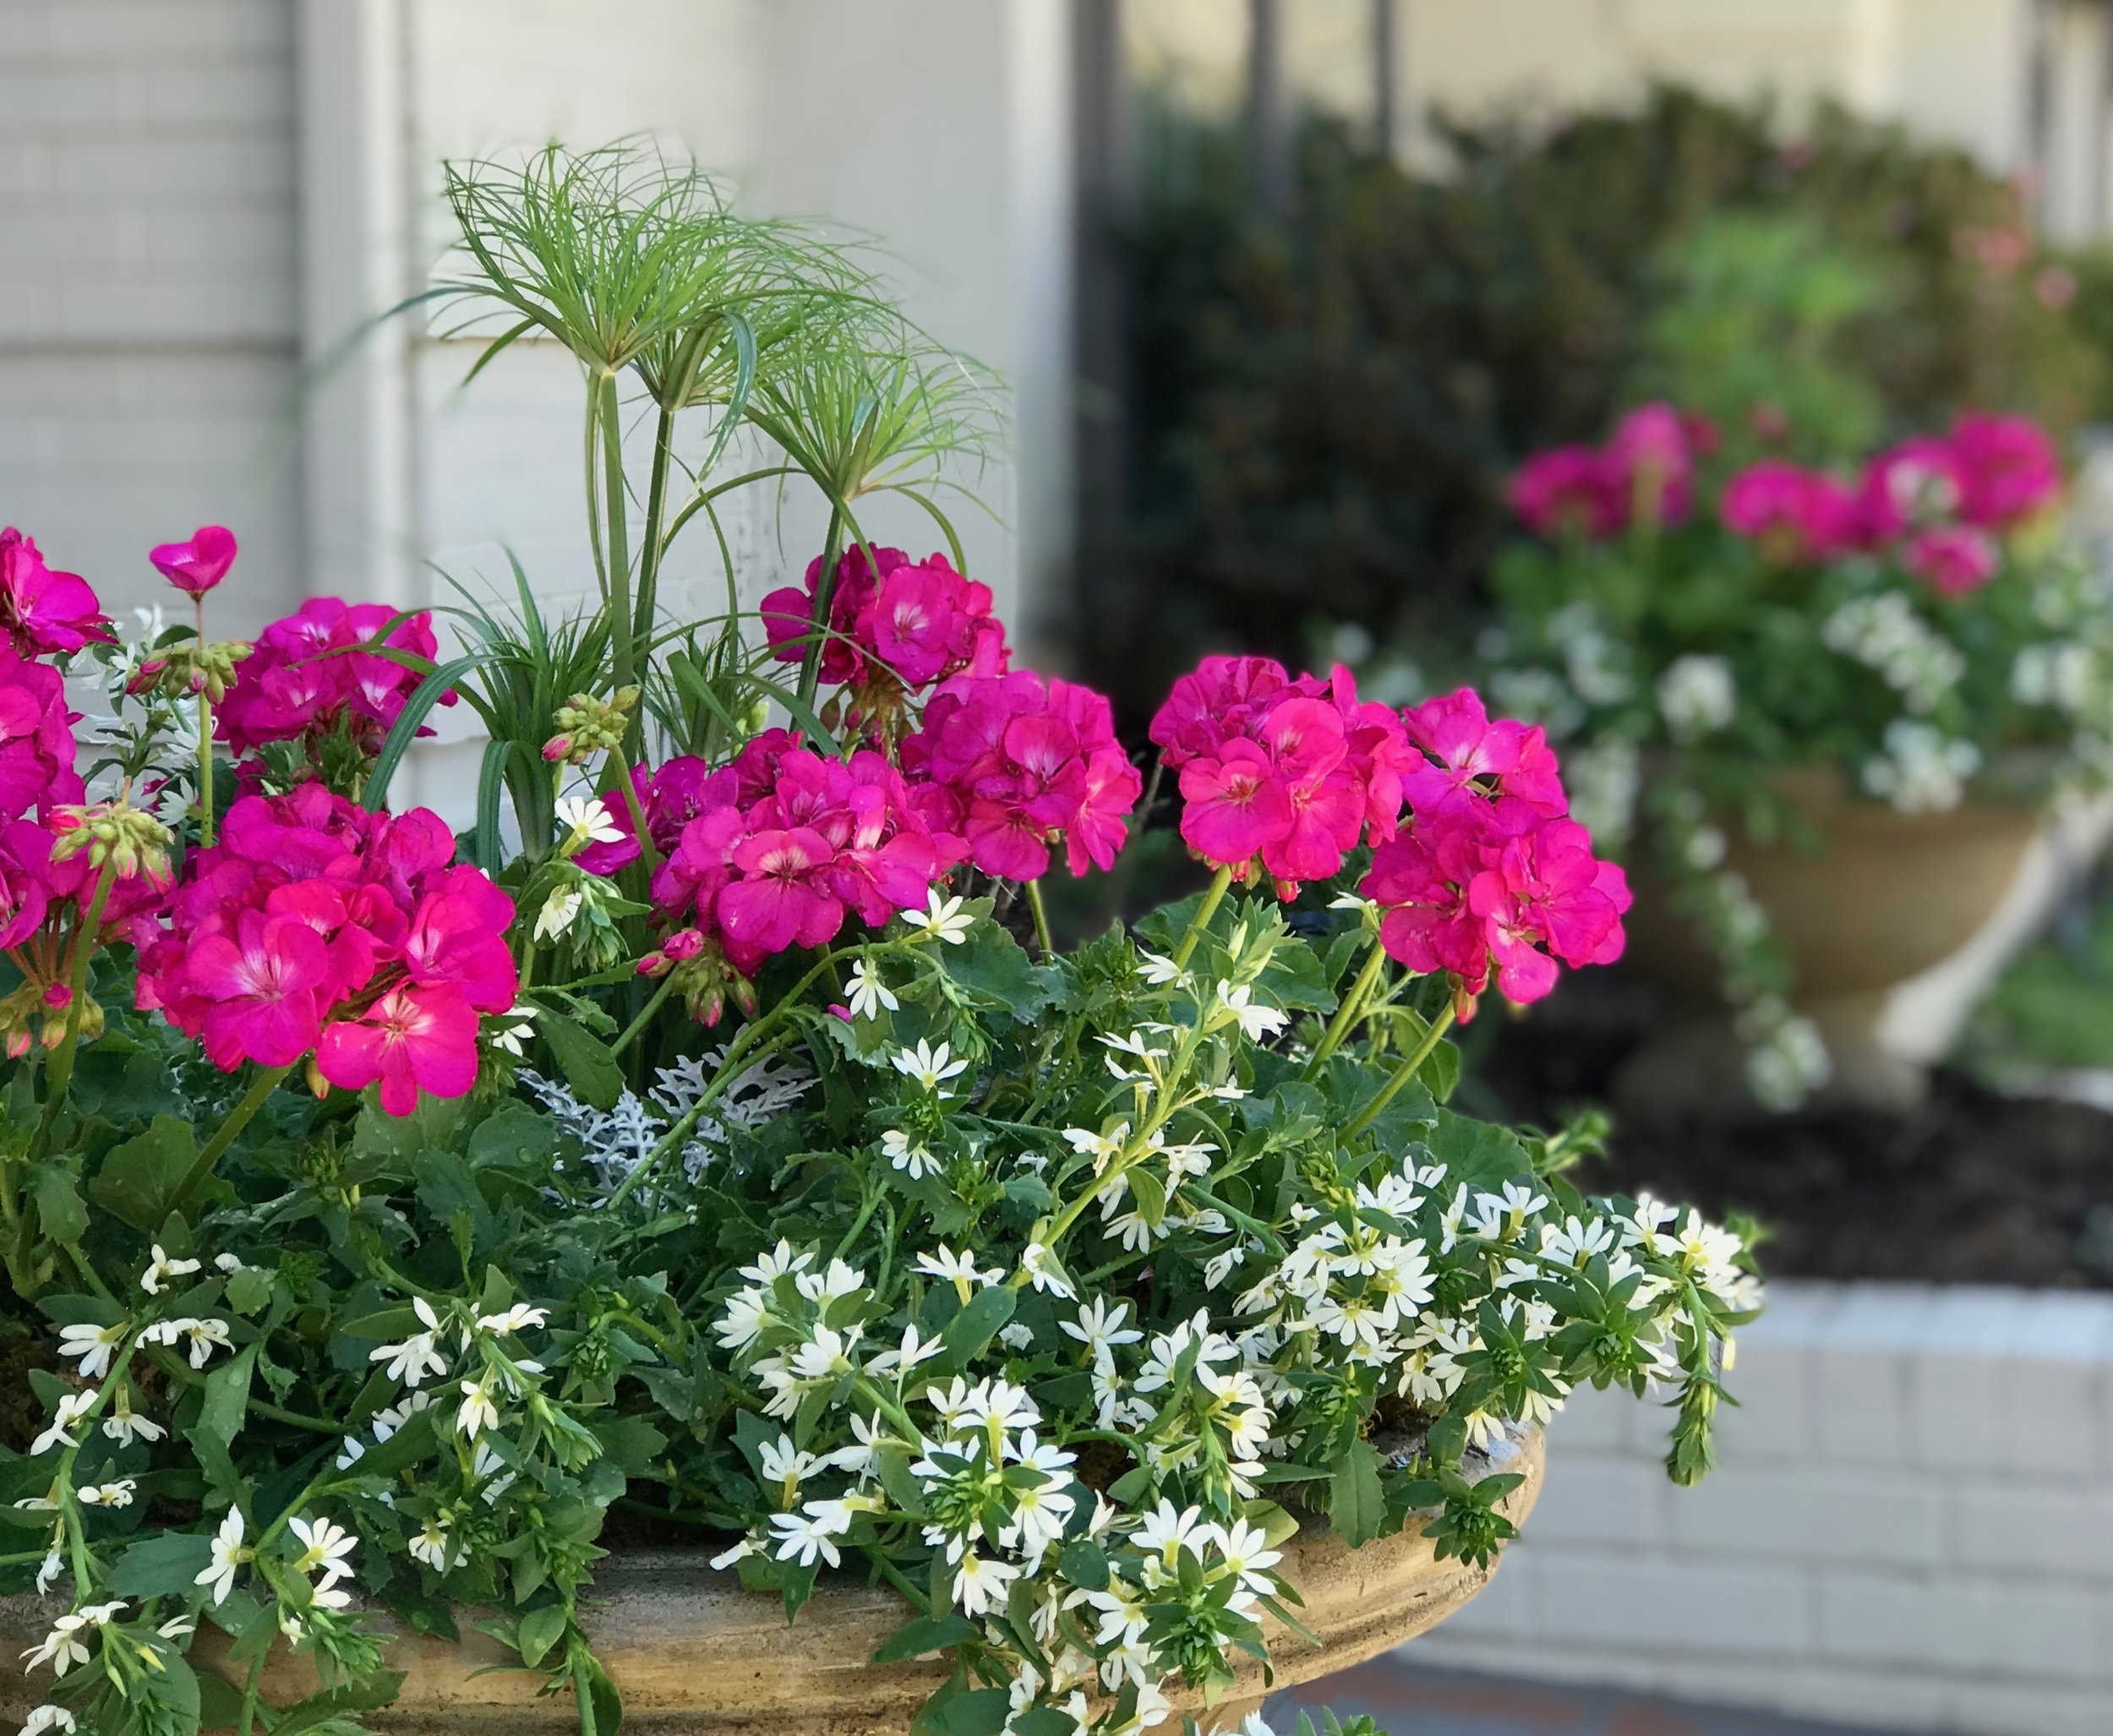 Let Adorn Help You    We all love pretty pots but not necessarily the upkeep, right? Let us know if you'd like to outsource the maintenance of your outdoor planters. Once a month, we'll pay your container gardens a visit to deadhead, trim and treat for garden pests as needed. Our residential and commercial clients REALLY enjoy this monthly service!  We'd love for you to follow Adorn on social media for more container gardening tips and inspiration.   https://www.facebook.com/adornplanters https://www.instagram.com/adornplanters https://www.pinterest.com/adornplanters